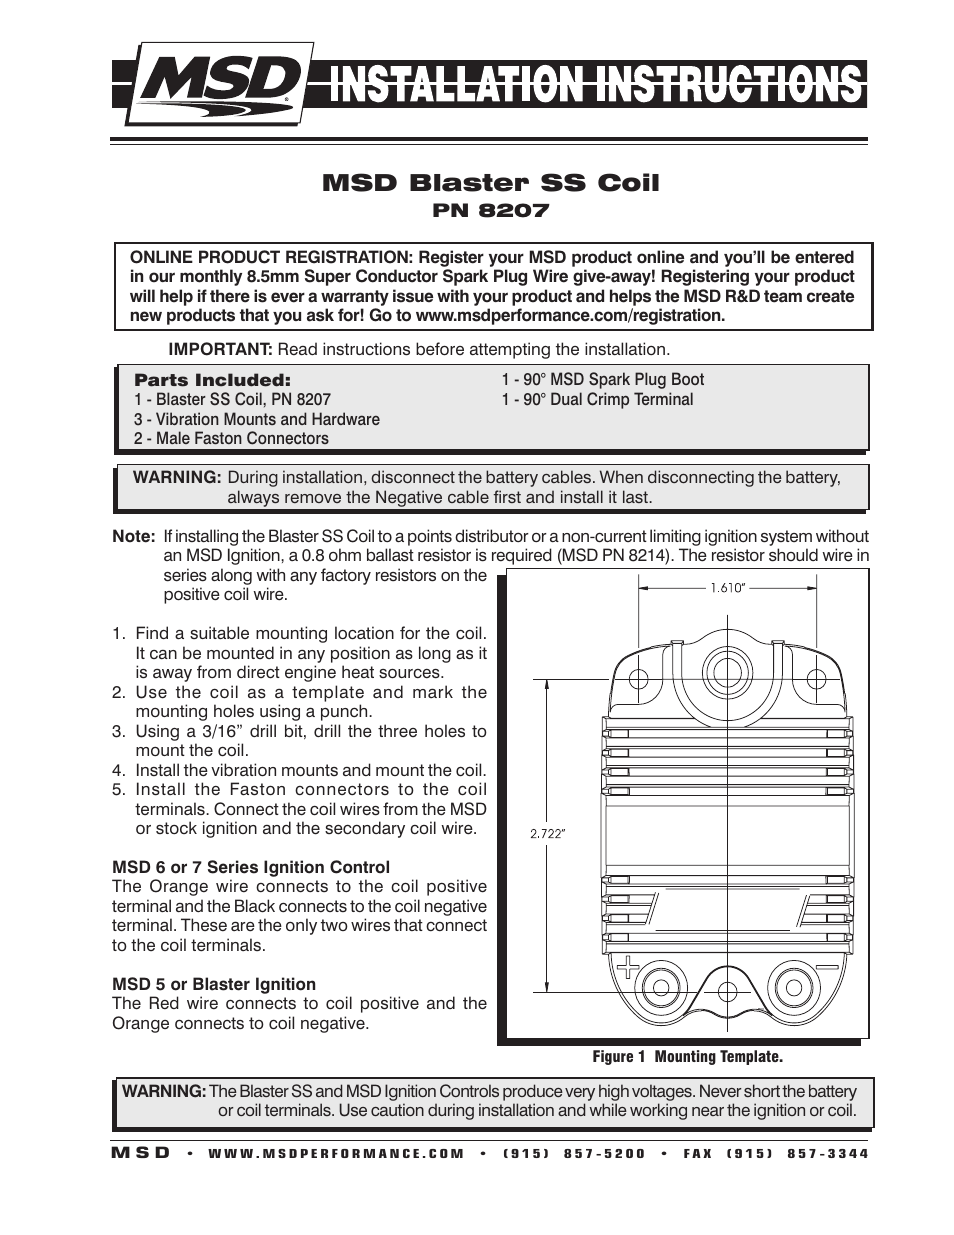 msd 8207 blaster ss coil installation page1?resize\\\\=665%2C861 diagrams 1182638 msd 6200 wiring diagram msd 6a wiring diagram msd 6a 6200 wiring diagram at nearapp.co